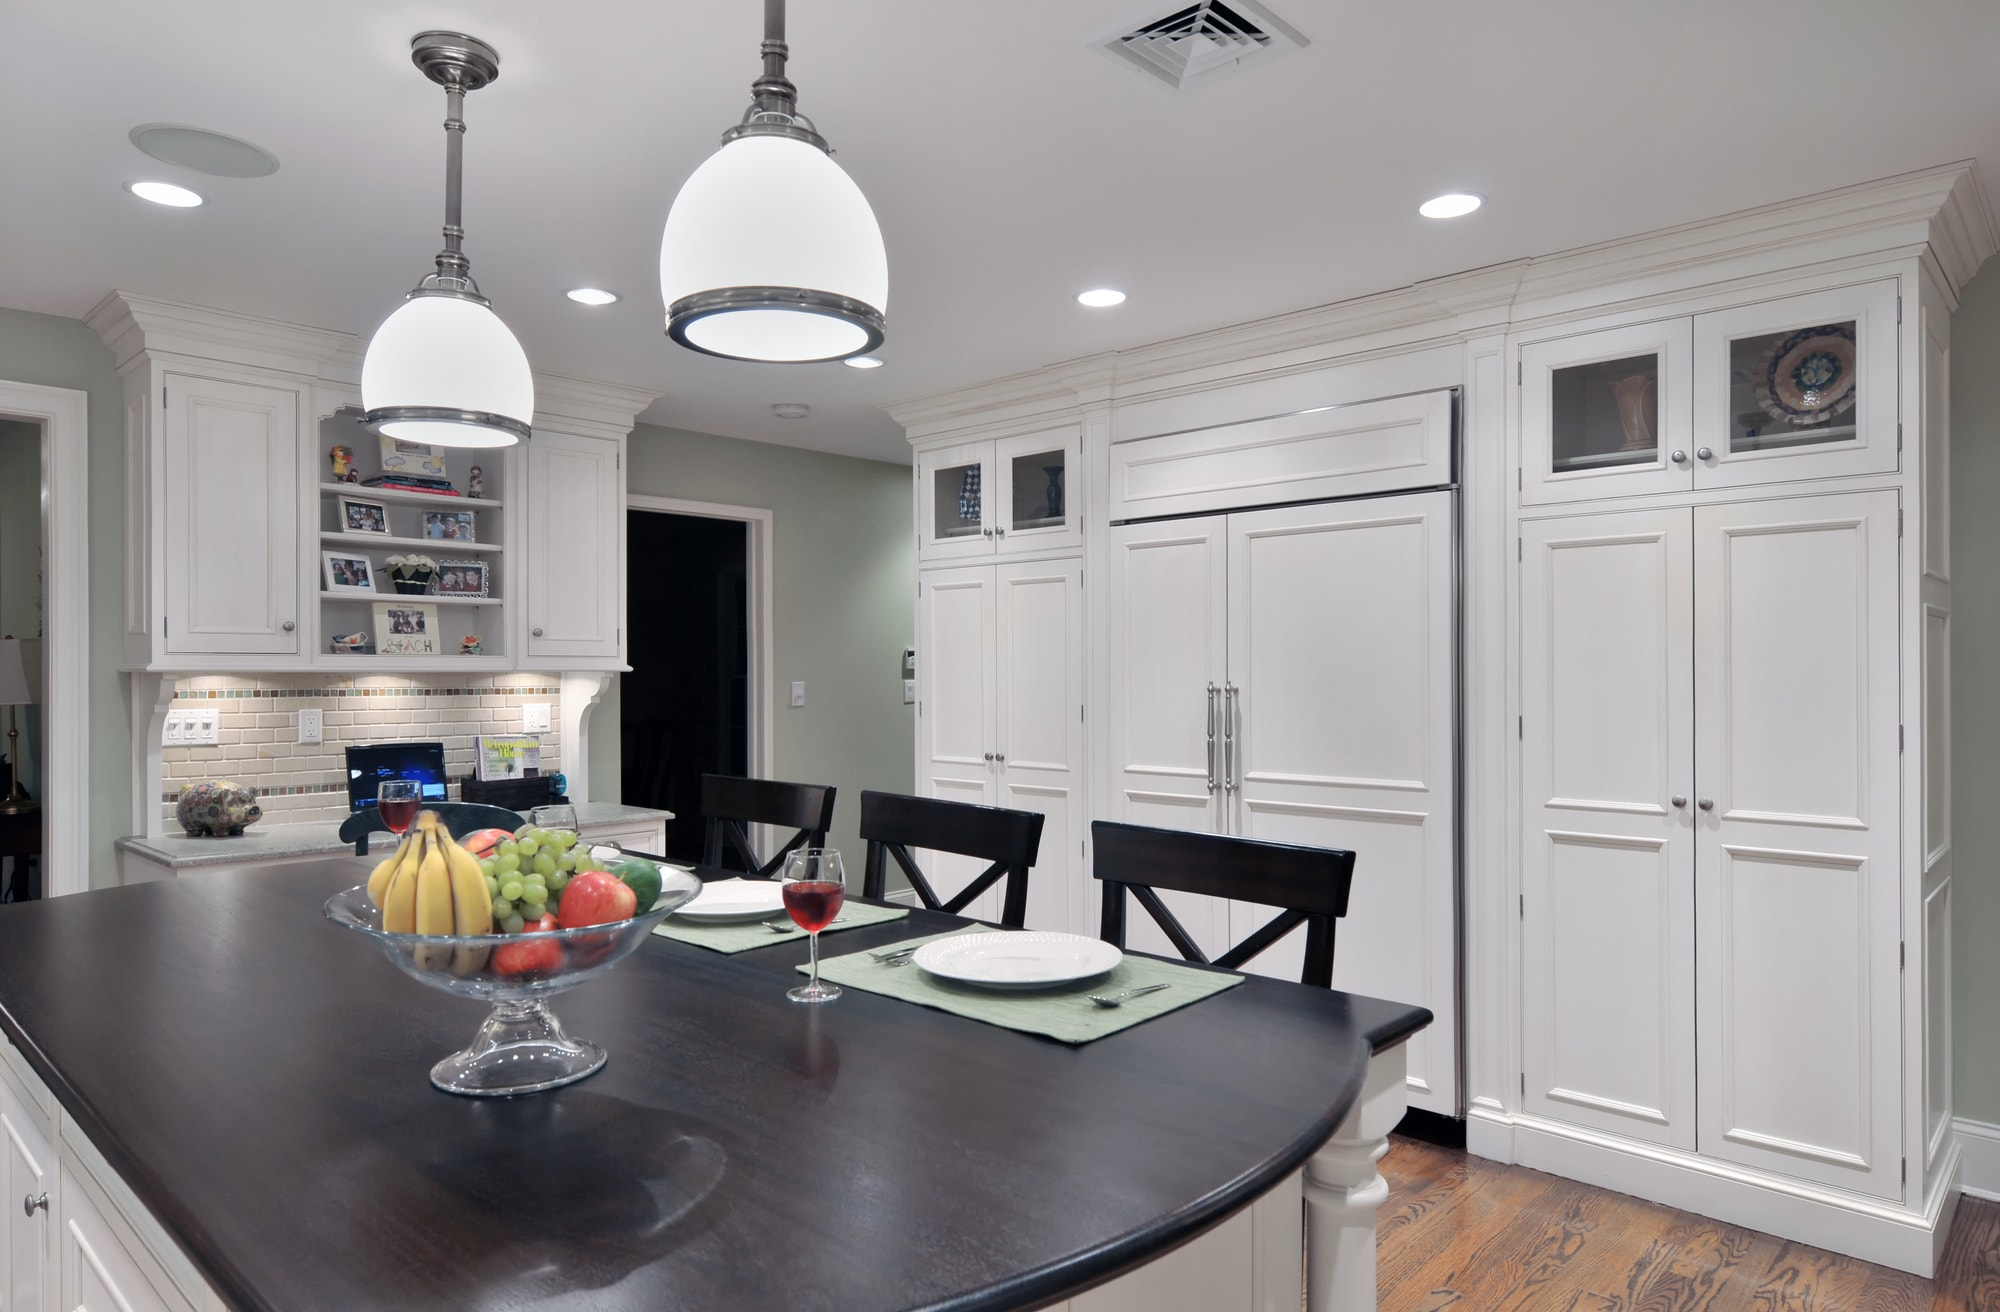 Traditional style kitchen with with modern light fixtures